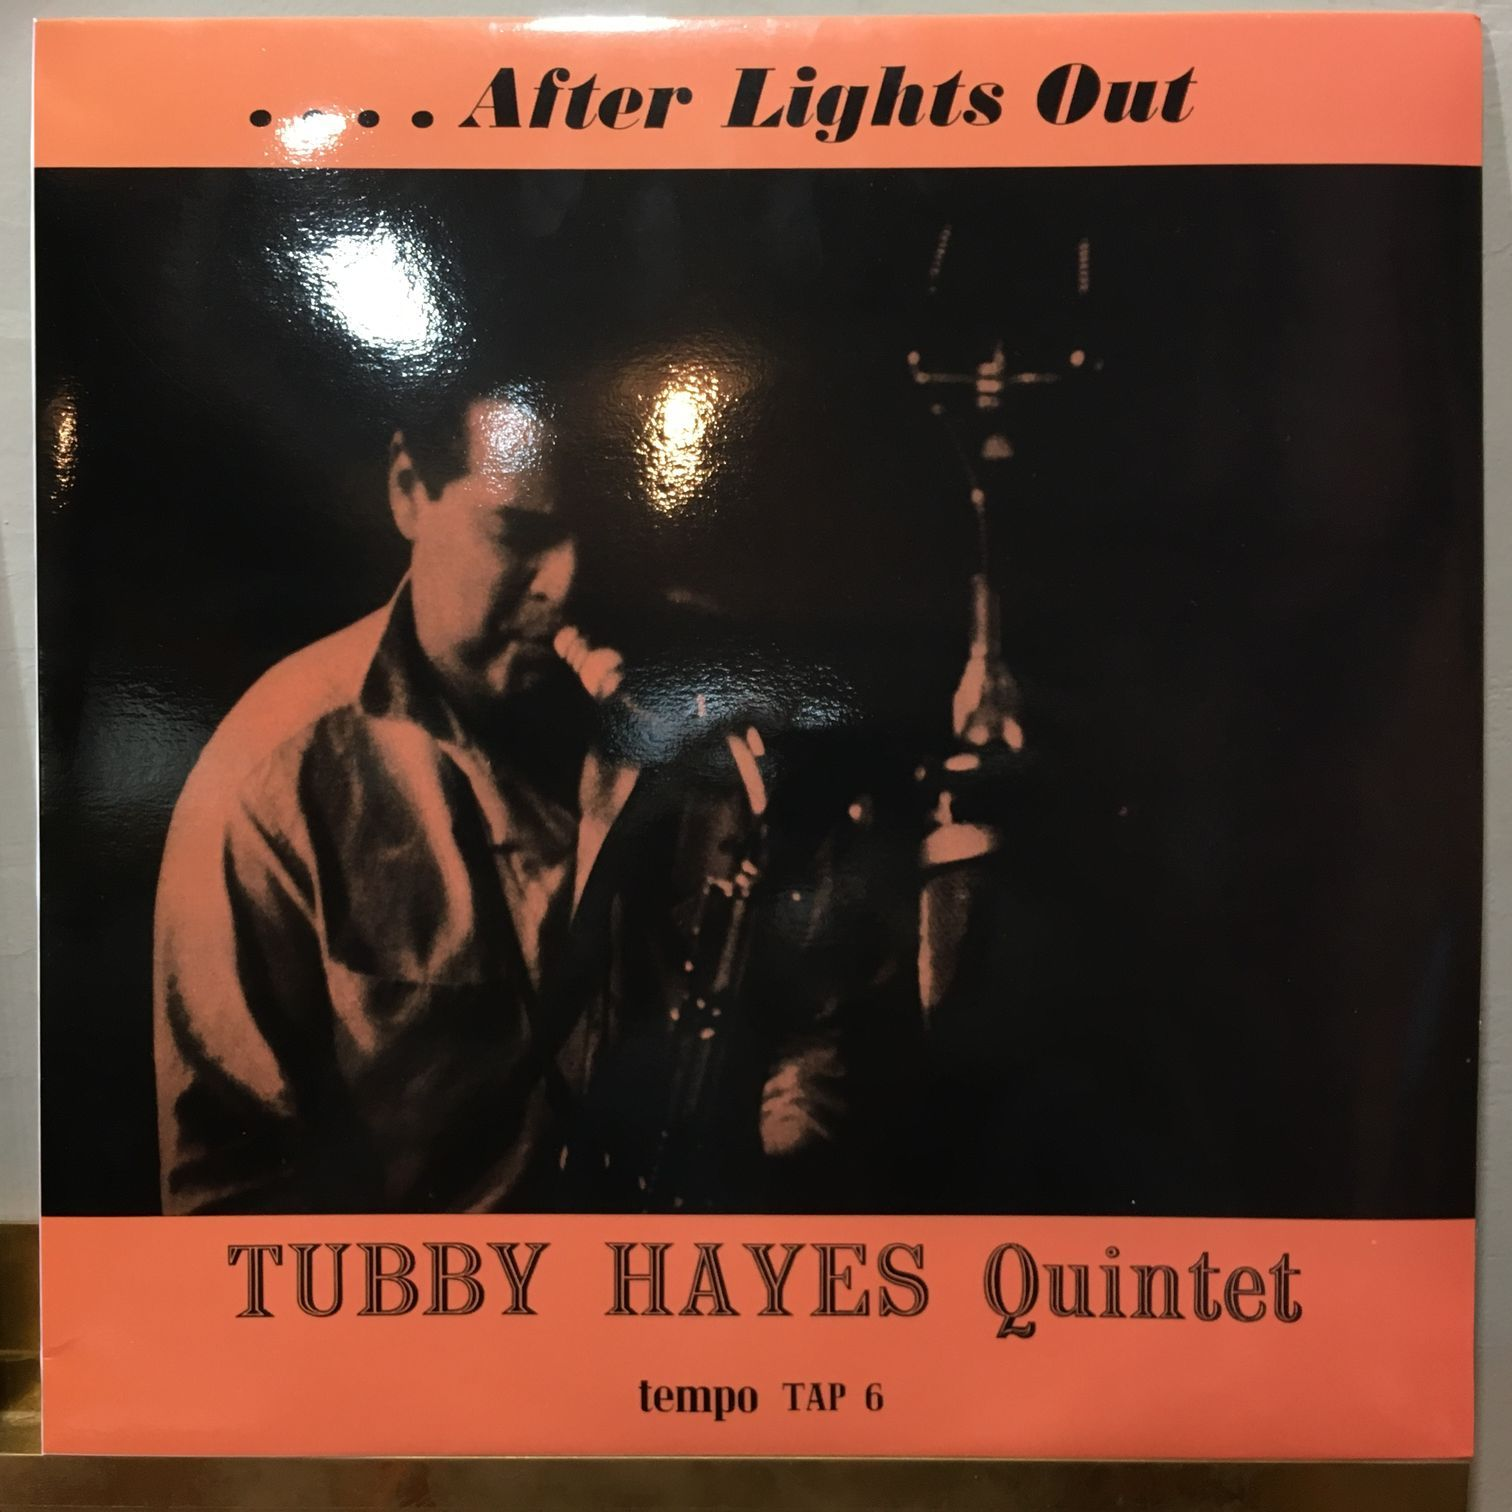 ●TUBBY HAYES QUINET/AFTER LIGHTS OUT